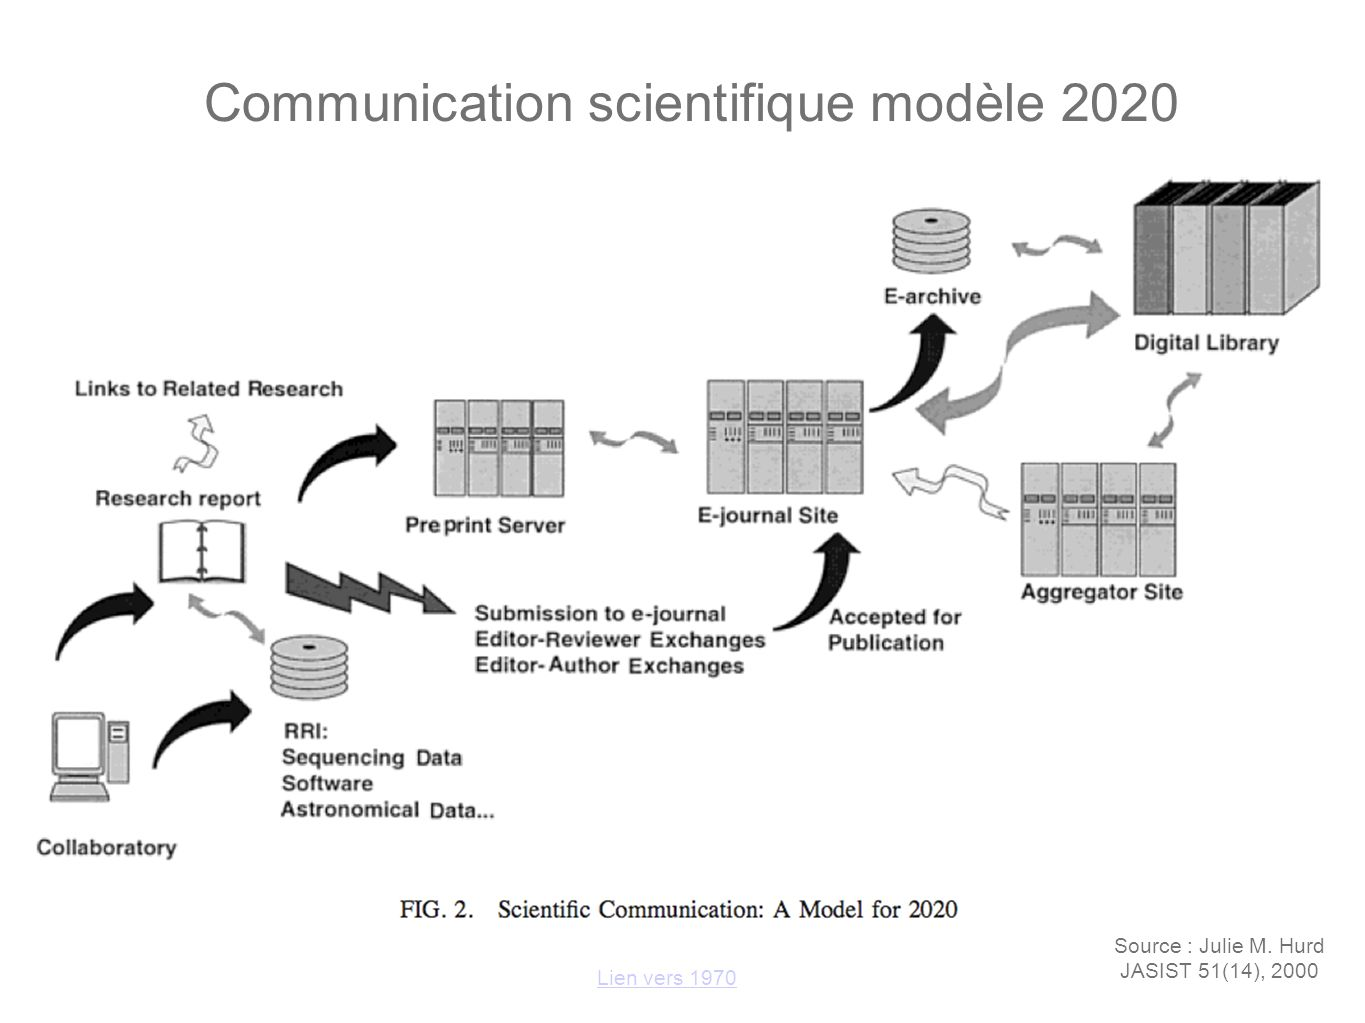 Communication scientifique modèle 2020 Source : Julie M. Hurd JASIST 51(14), 2000 Lien vers 1970